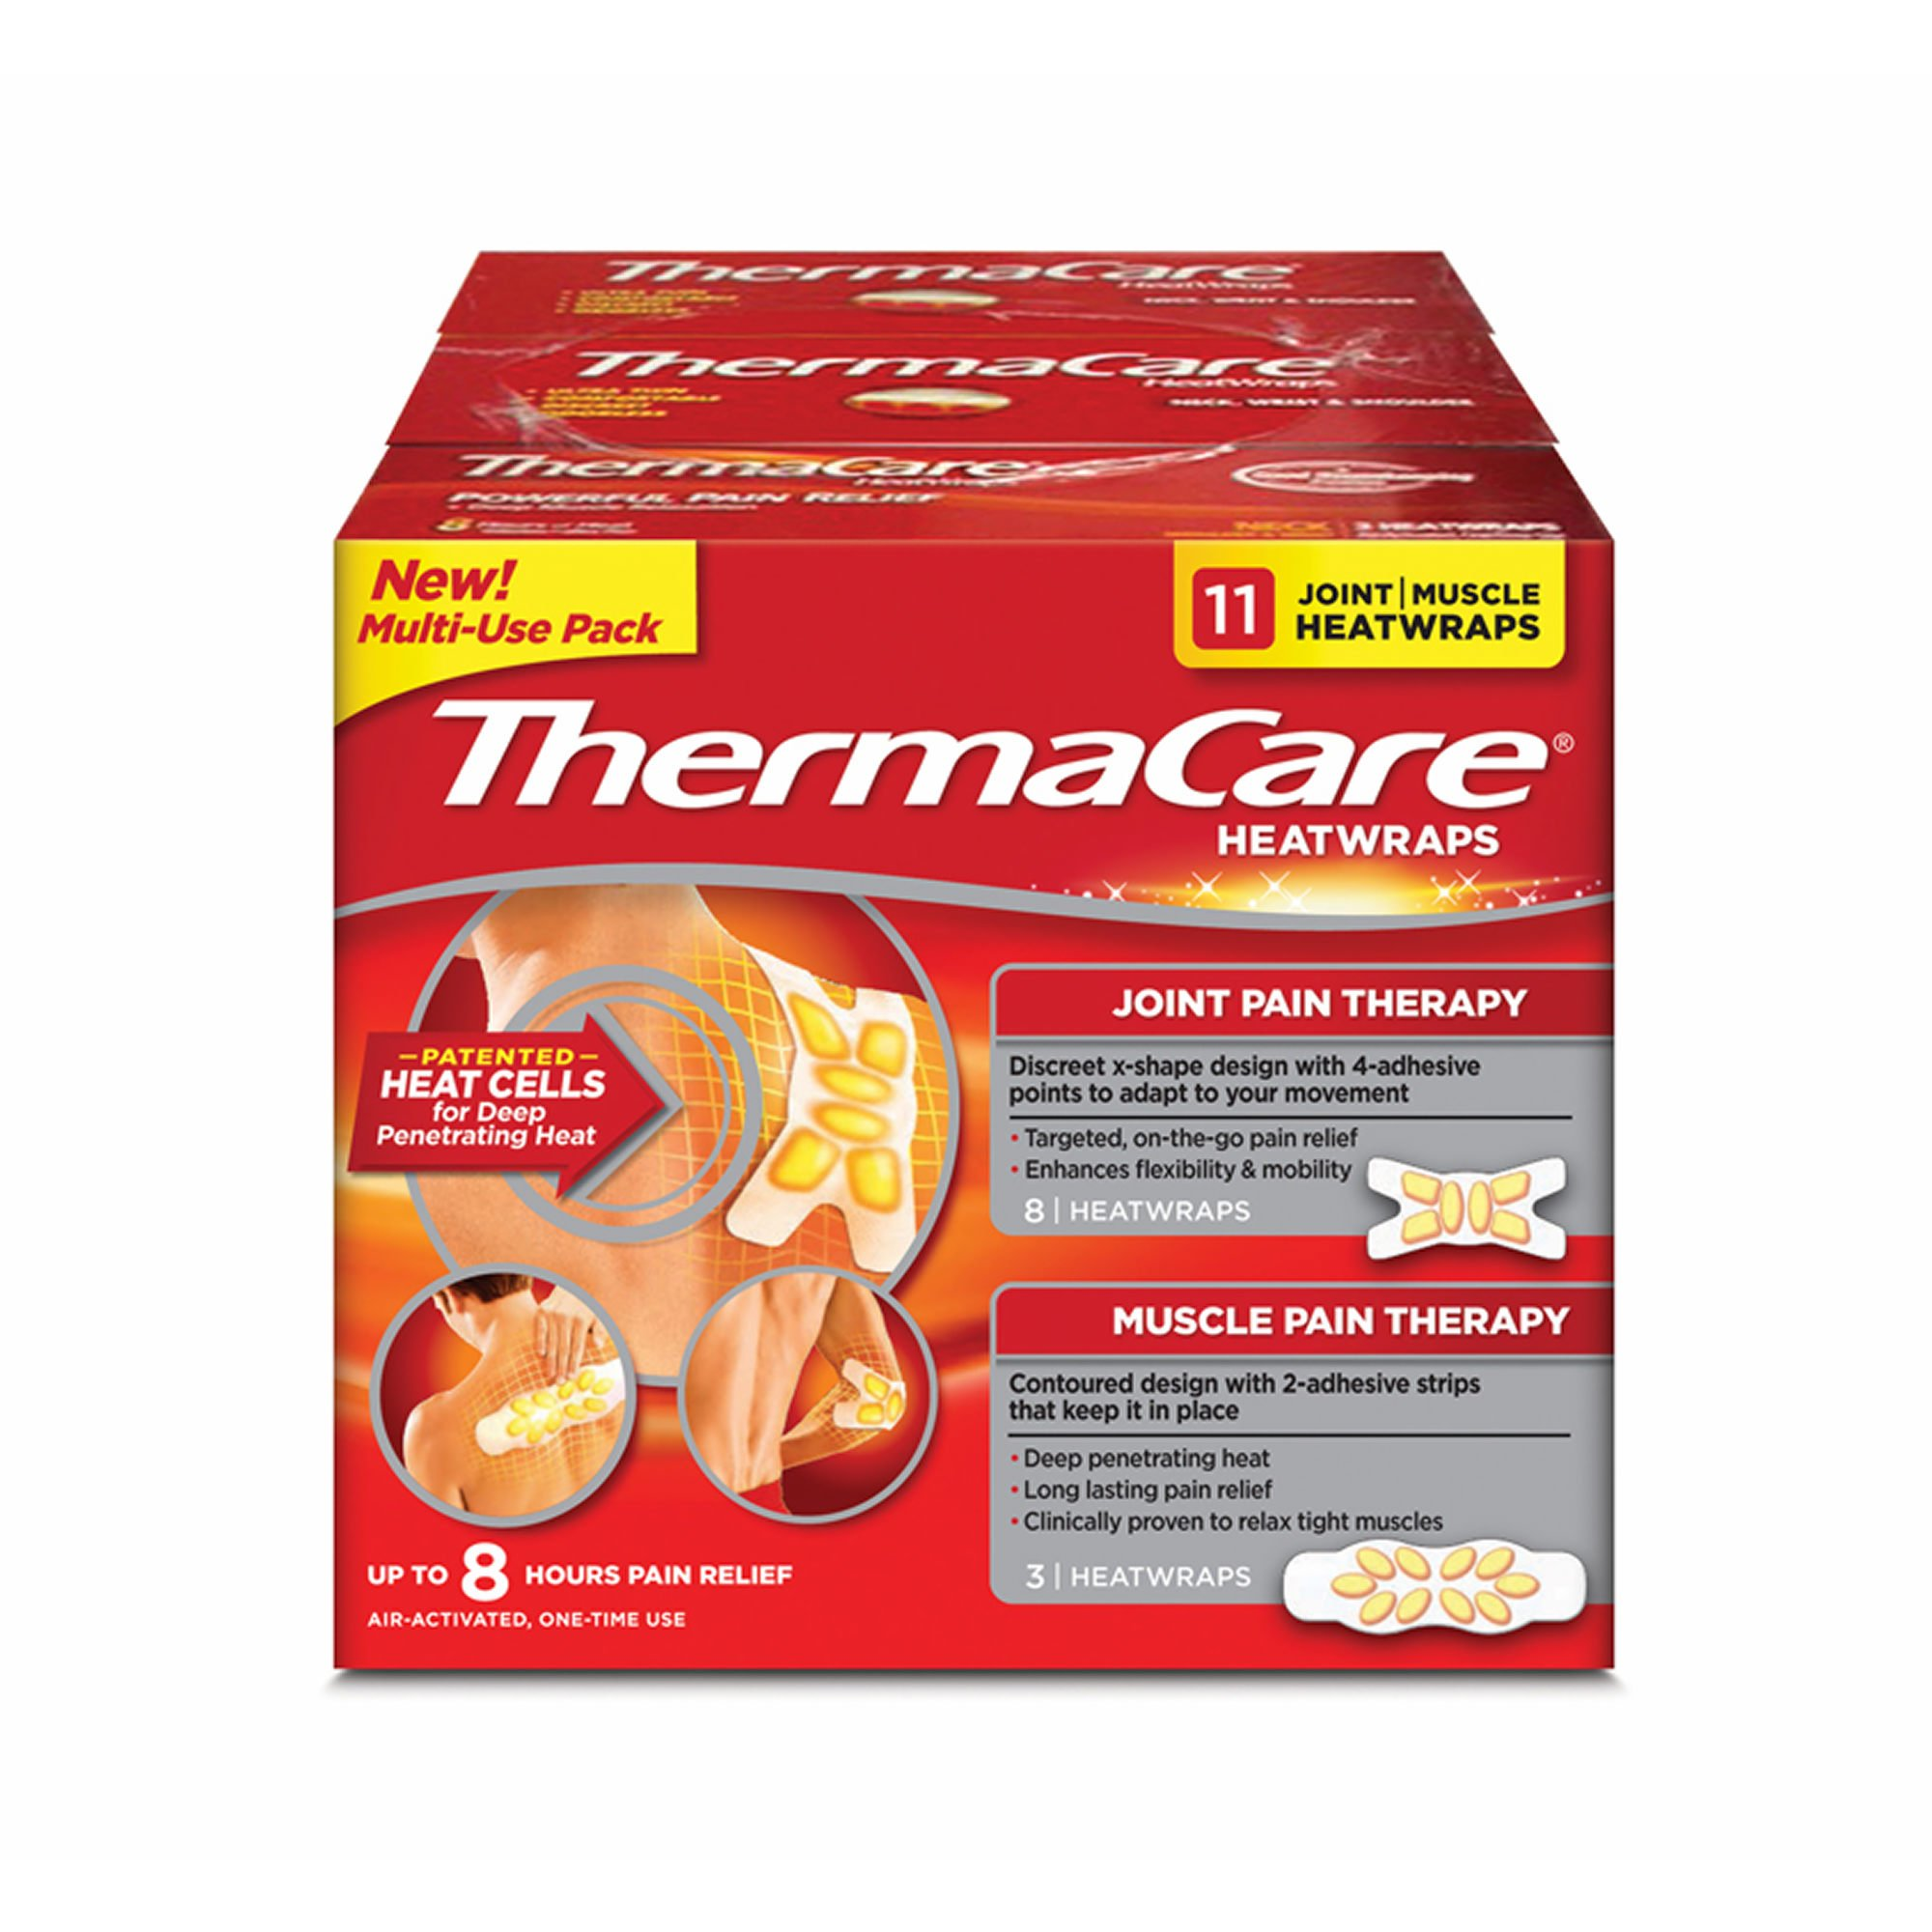 ThermaCare 8-Hour Joint/Muscle HeatWraps, 11 ct. (pack of 6) by ThermaCare